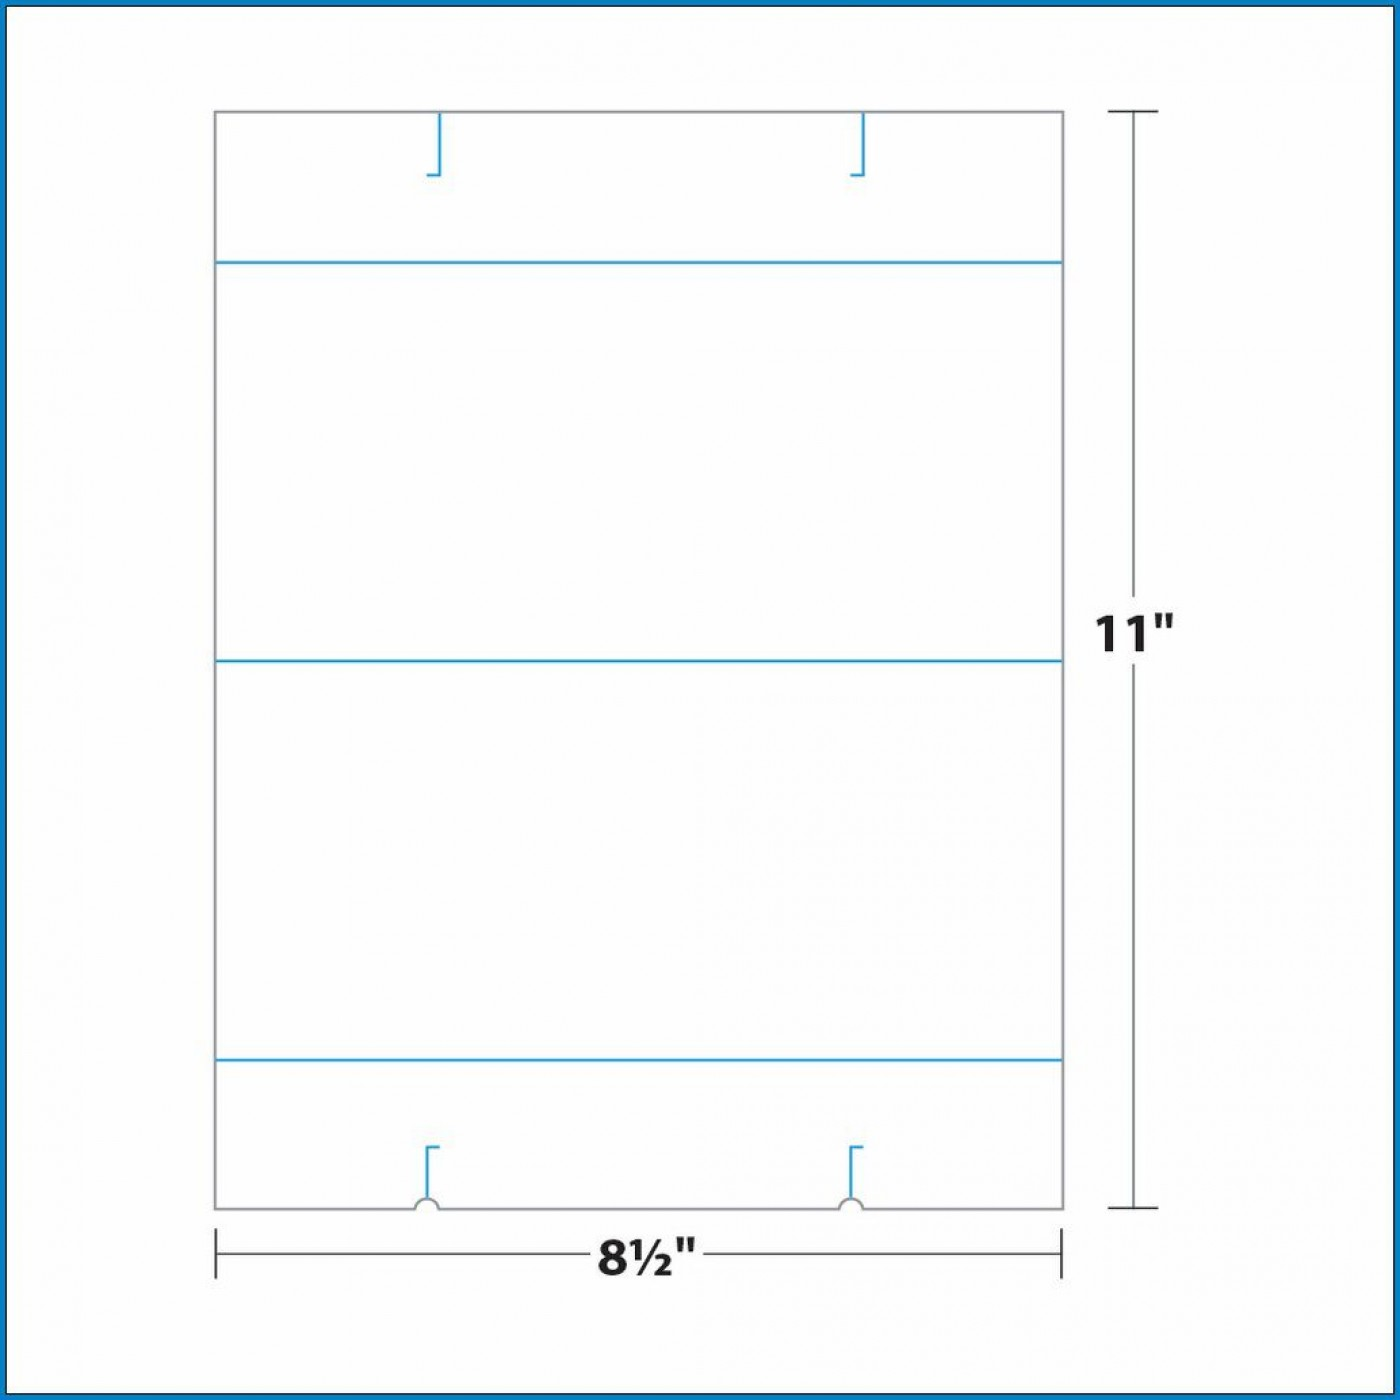 004 Breathtaking Tri Fold Table Tent Template Image  Free Word1400